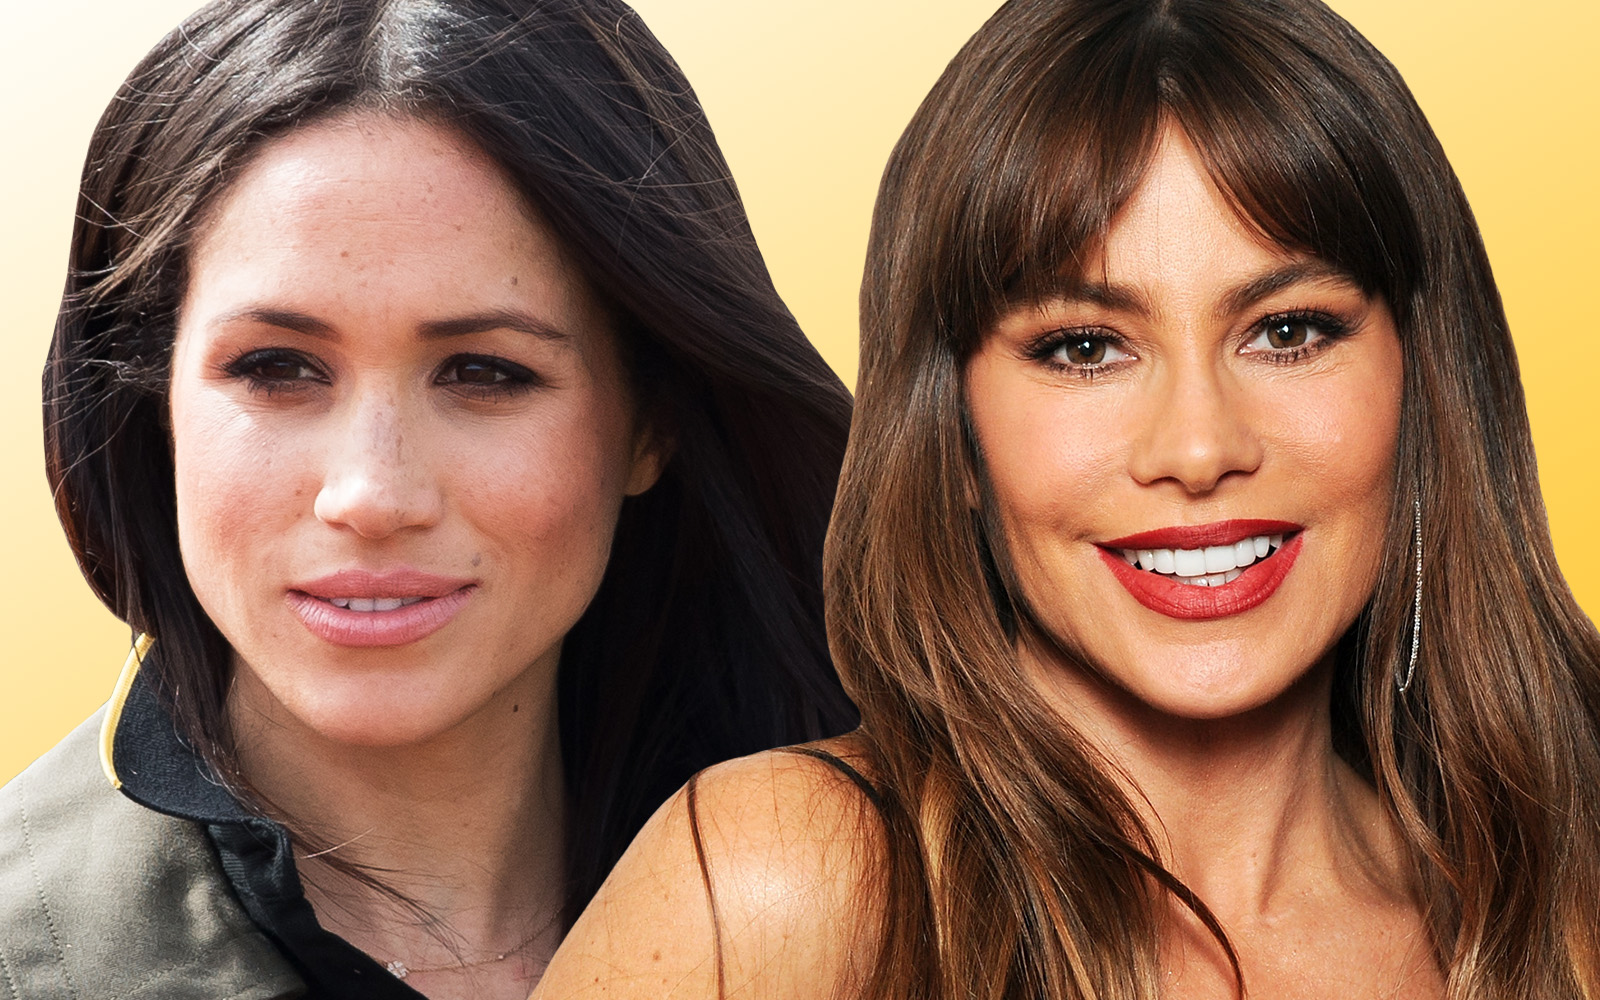 Meghan Markle and Sofia Vergara's Favorite Eyeliner